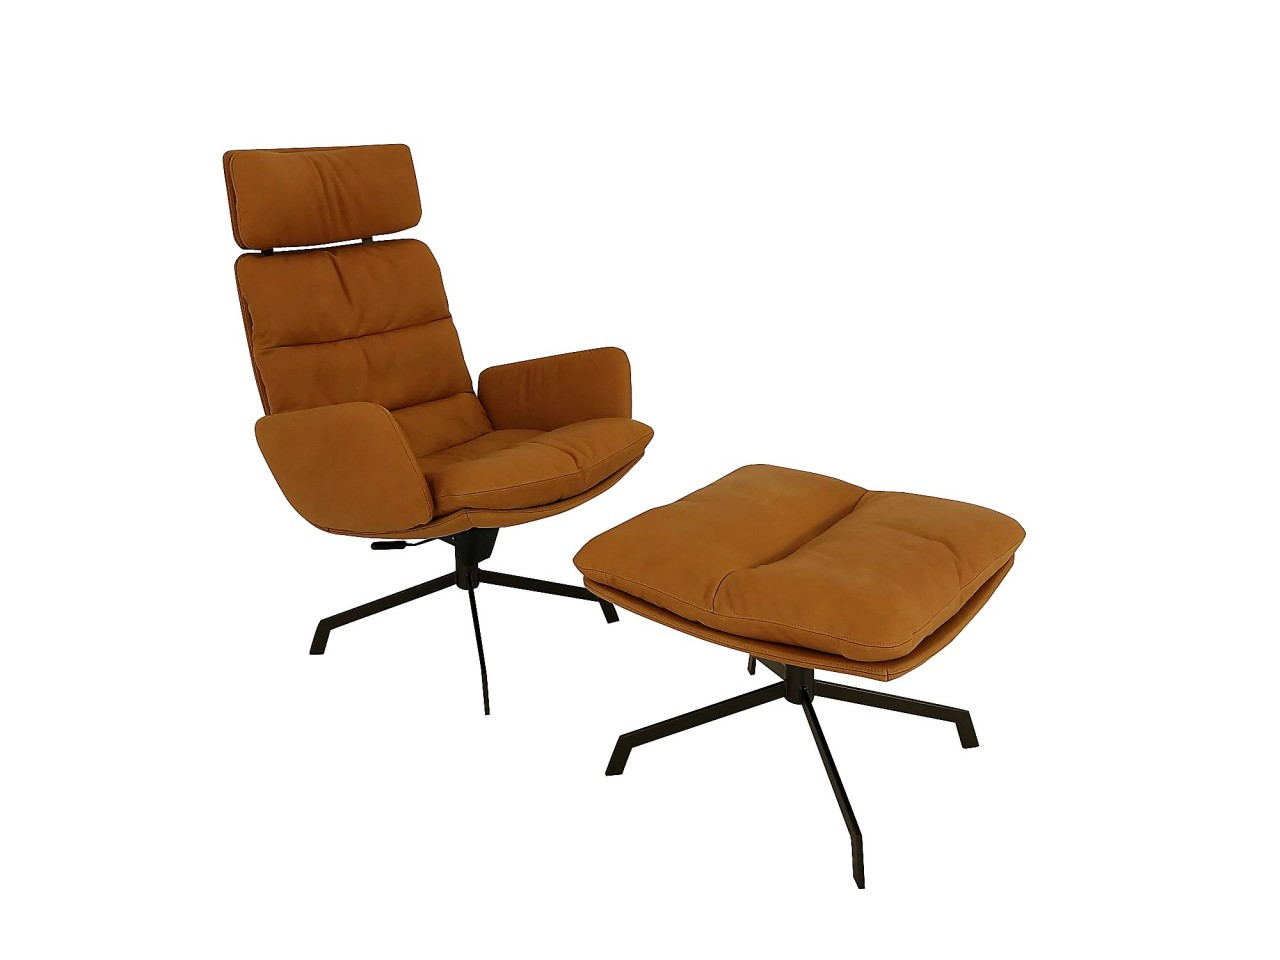 Sessel Wippfunktion Lounge Sessel Leder Lounge Sessel Leder Luxus Leder